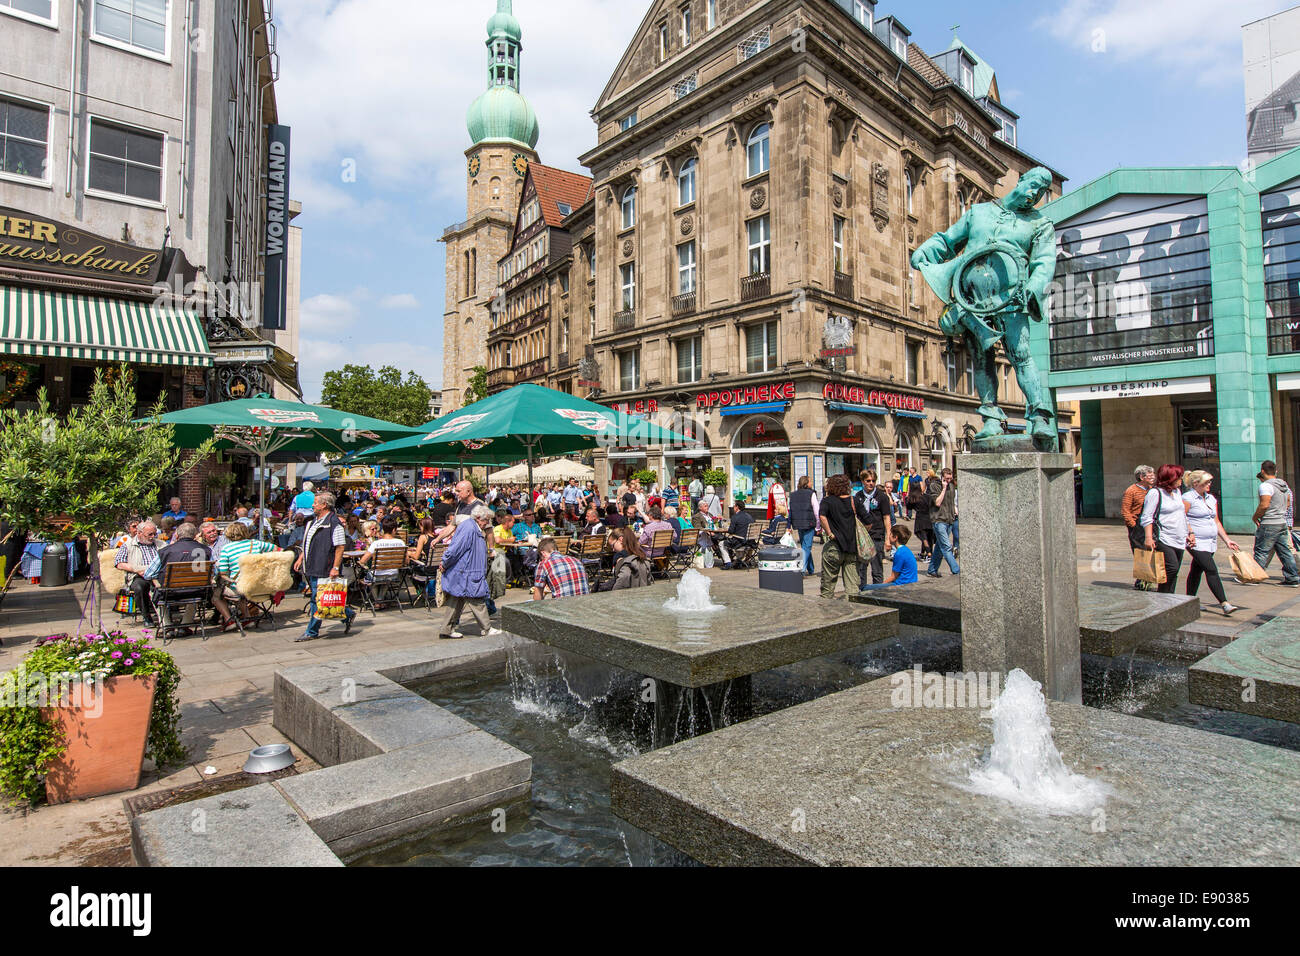 market square in the city center with many shops outdoor dining stock photo 74375957 alamy. Black Bedroom Furniture Sets. Home Design Ideas